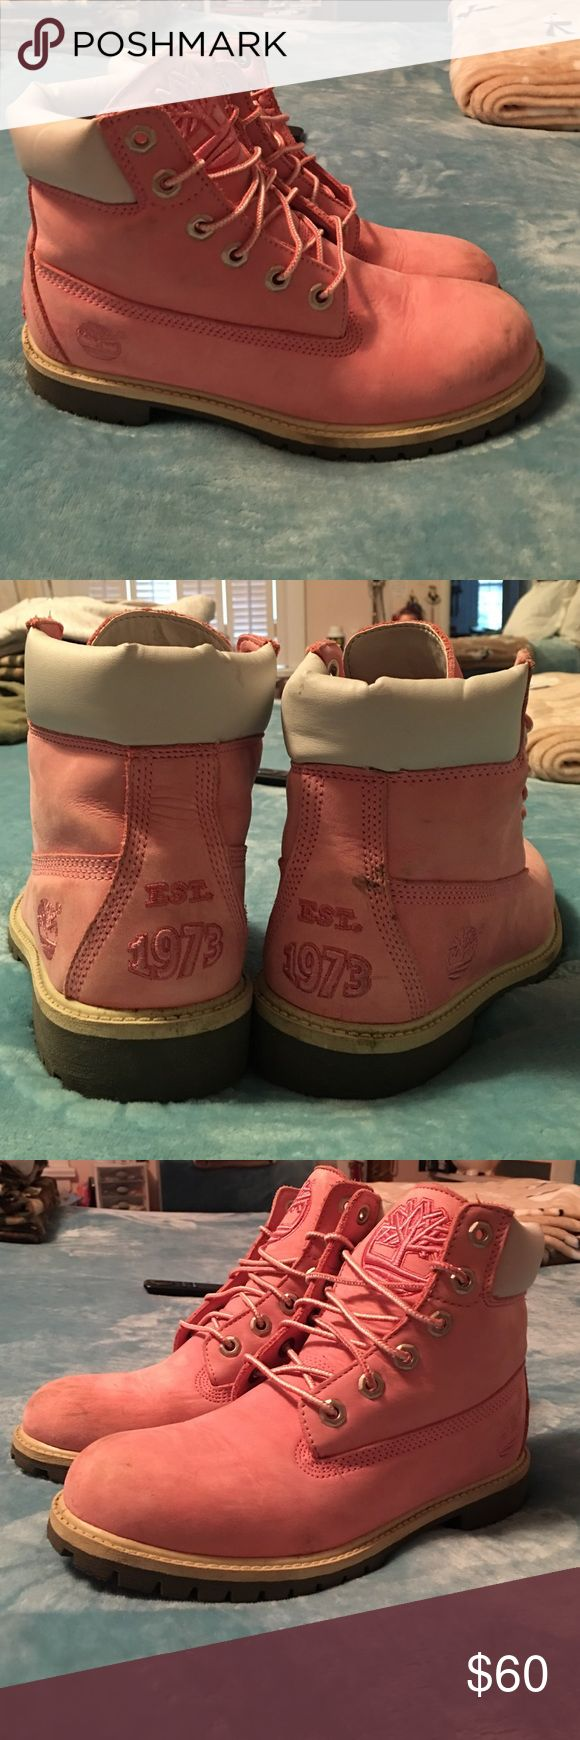 Pink Timberland Boots Lightly worn pink Timberland boots. Price is negotiable. Timberland Shoes Winter & Rain Boots